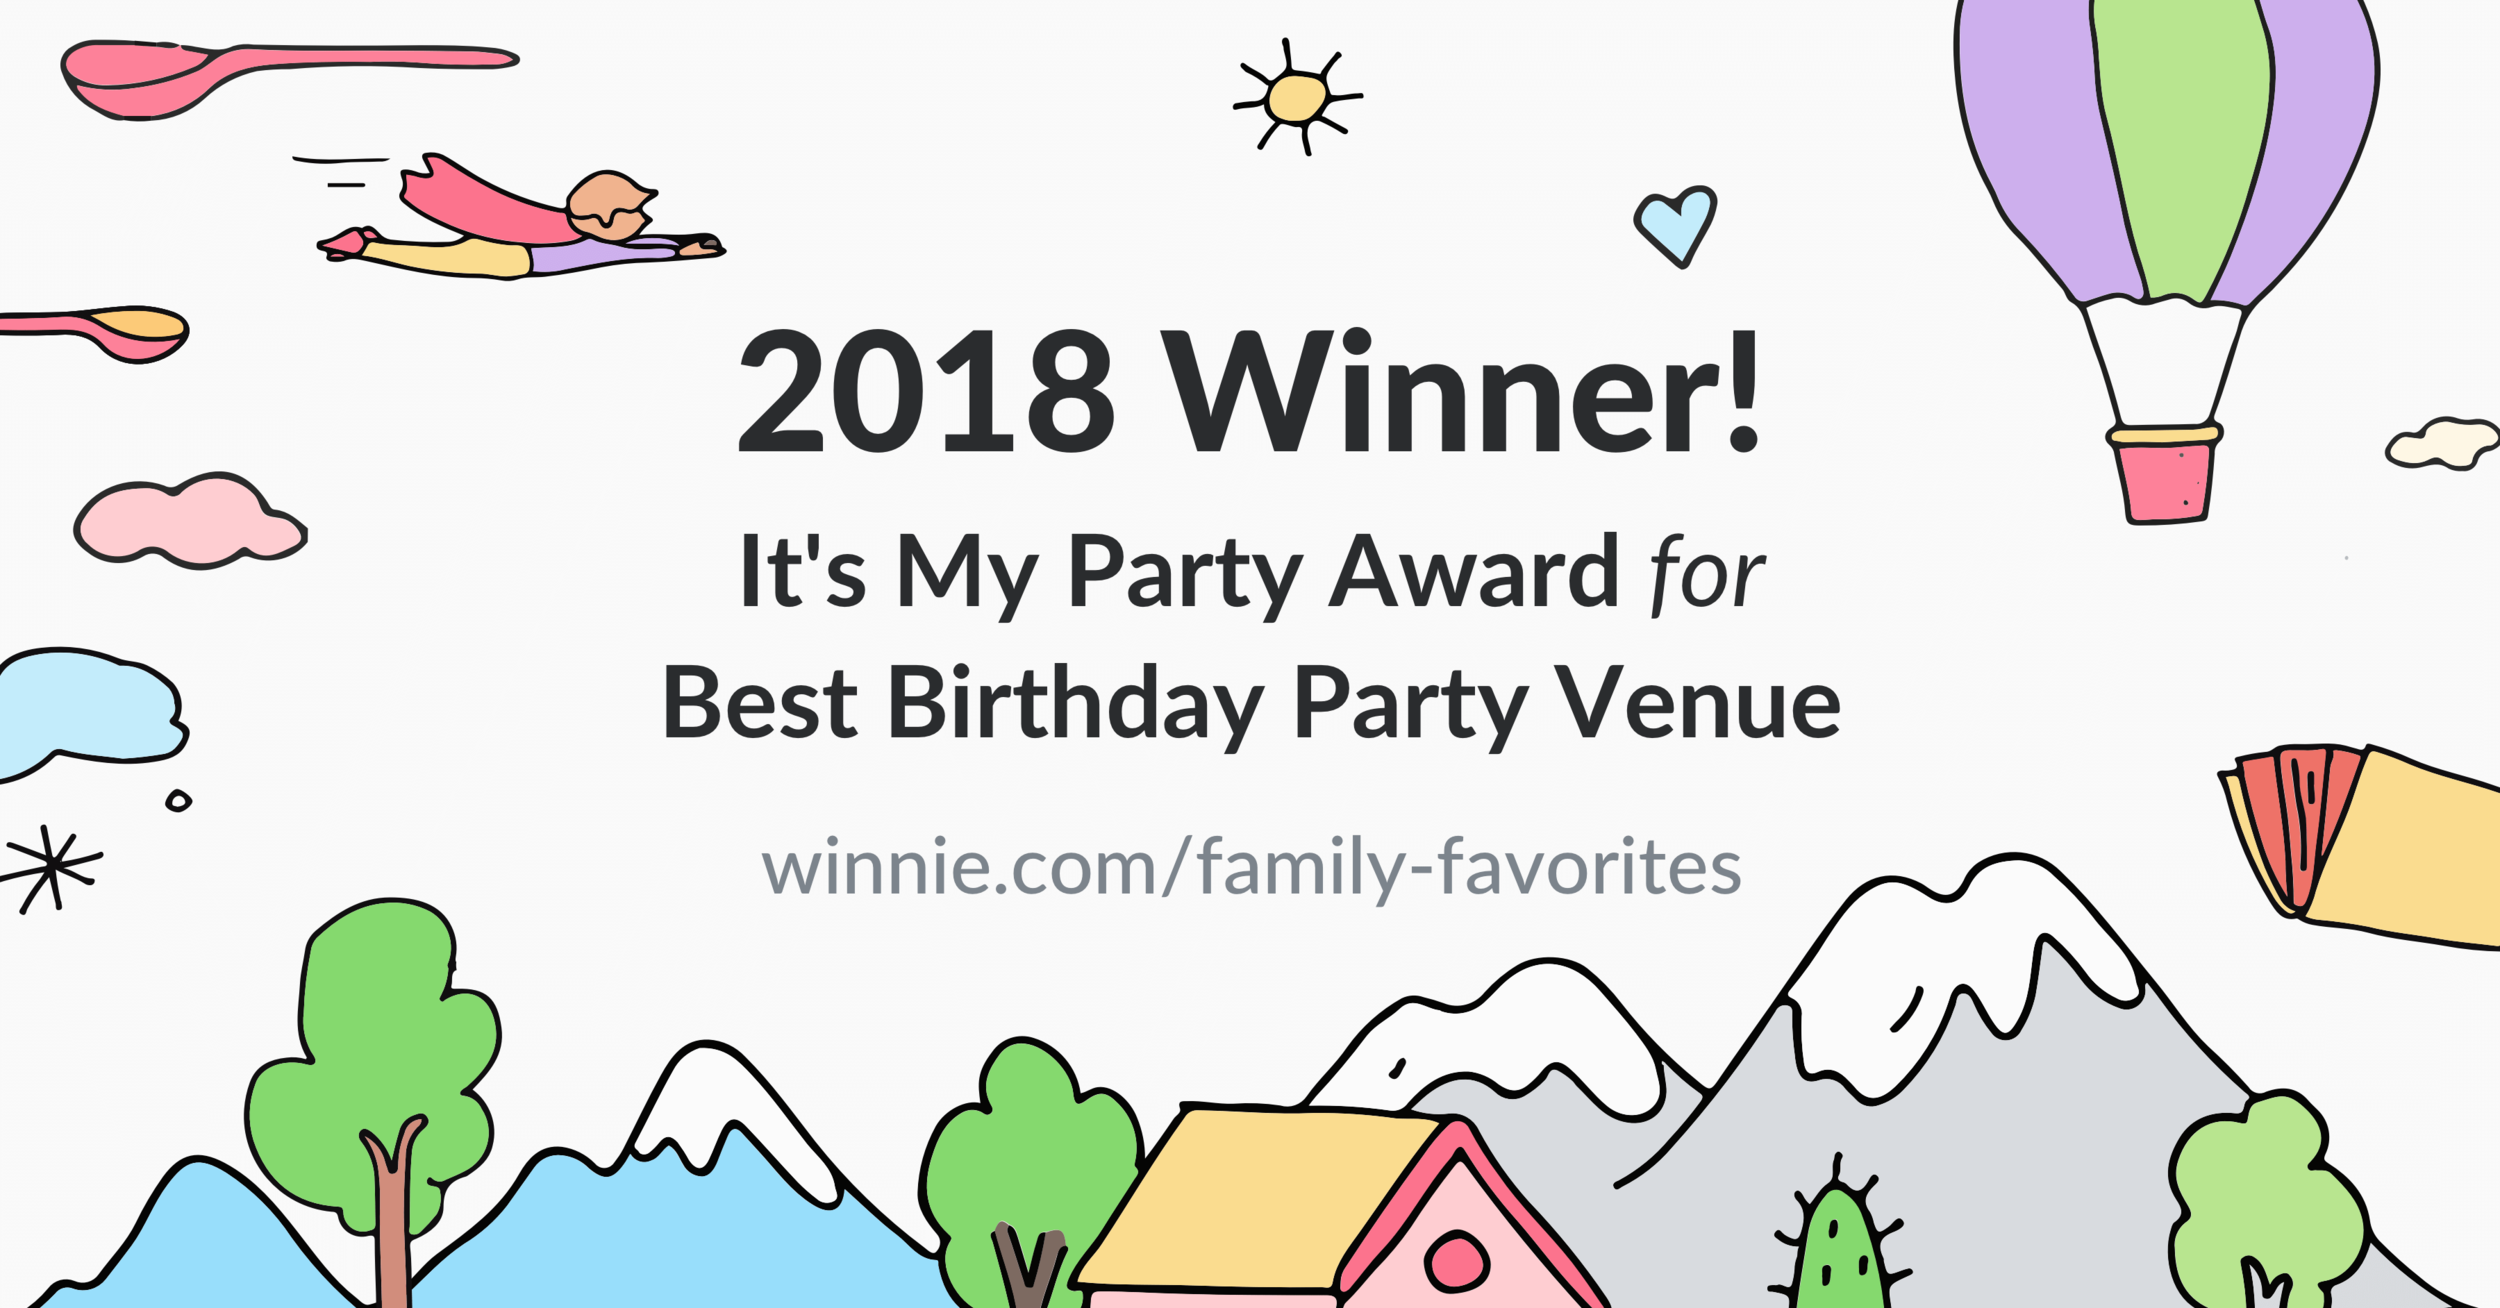 facebook_party_venue_2018.png